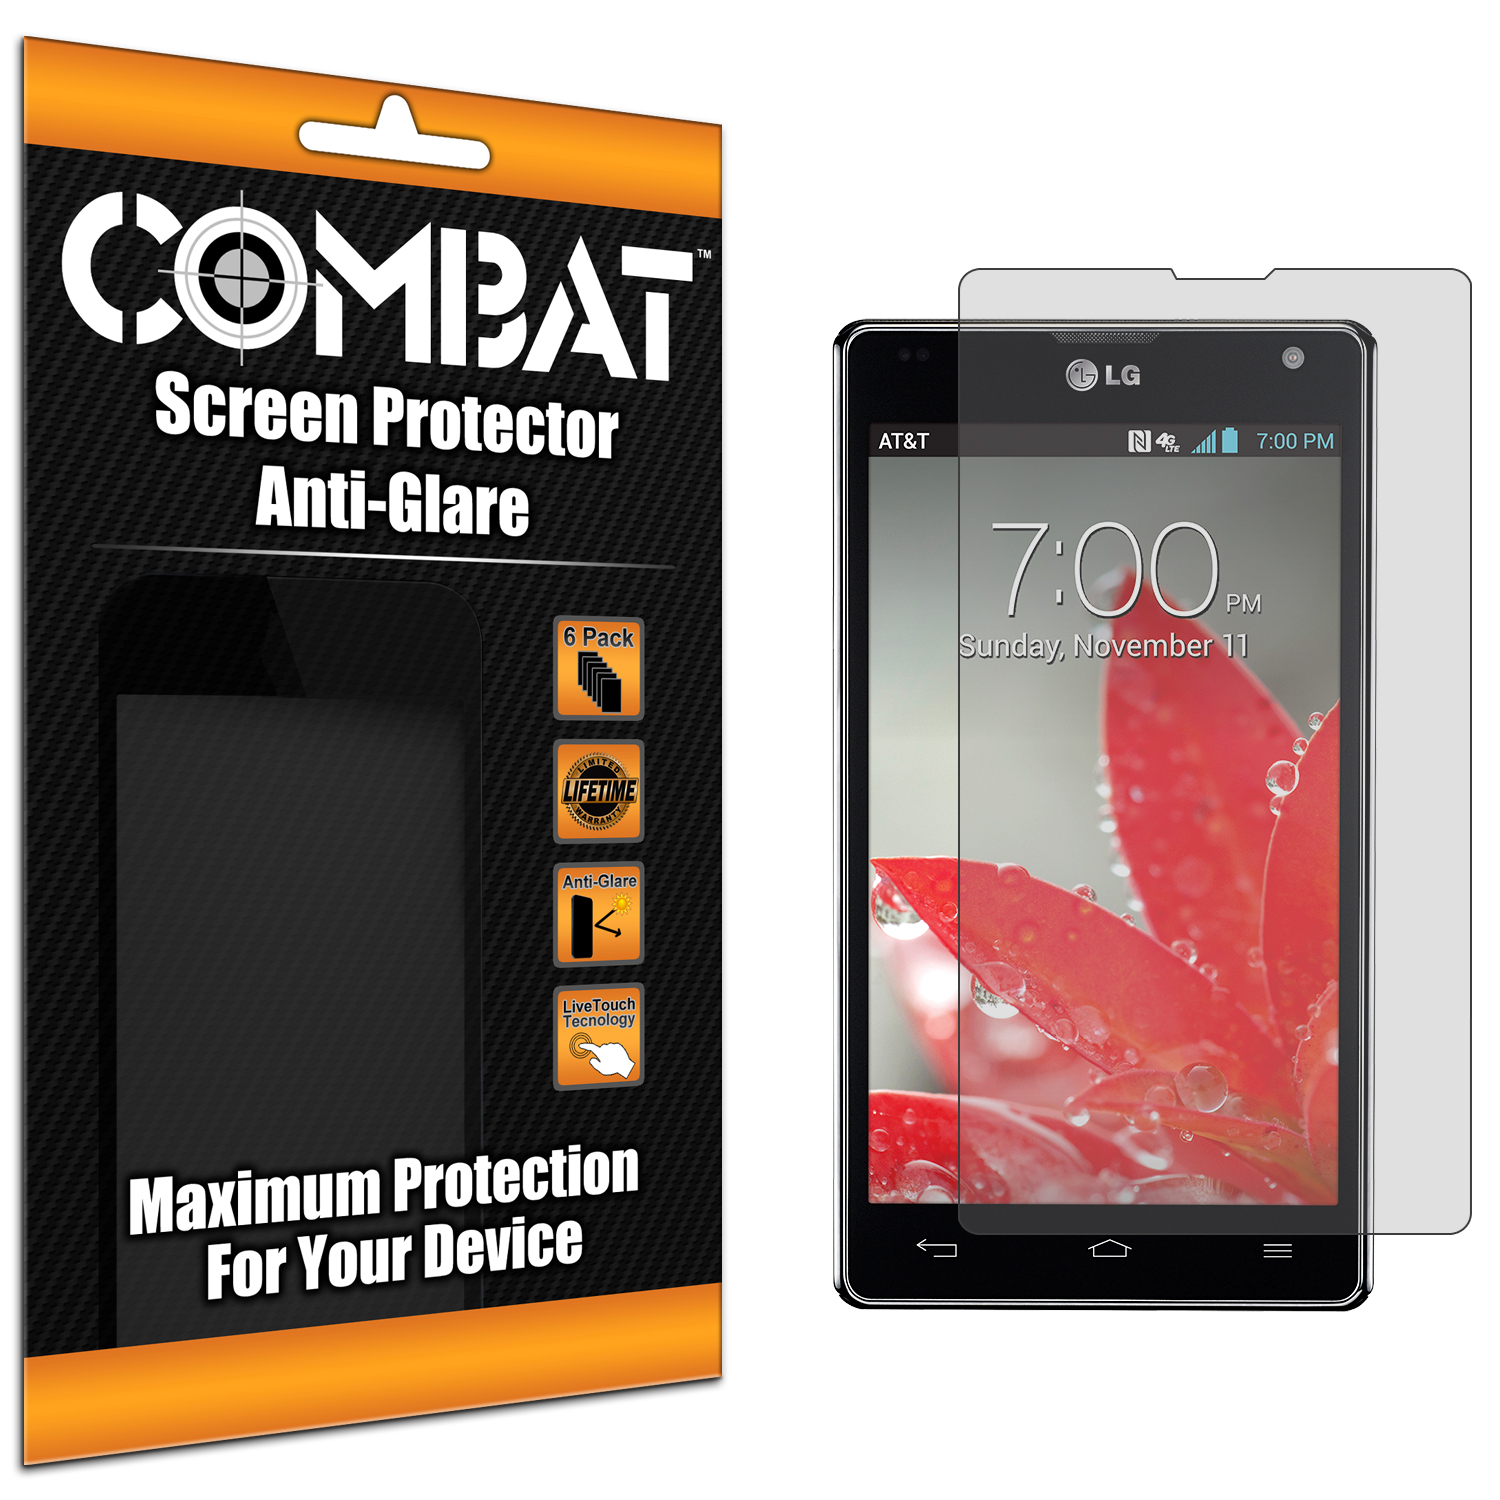 LG Optimus G E970 At&t Combat 6 Pack Anti-Glare Matte Screen Protector